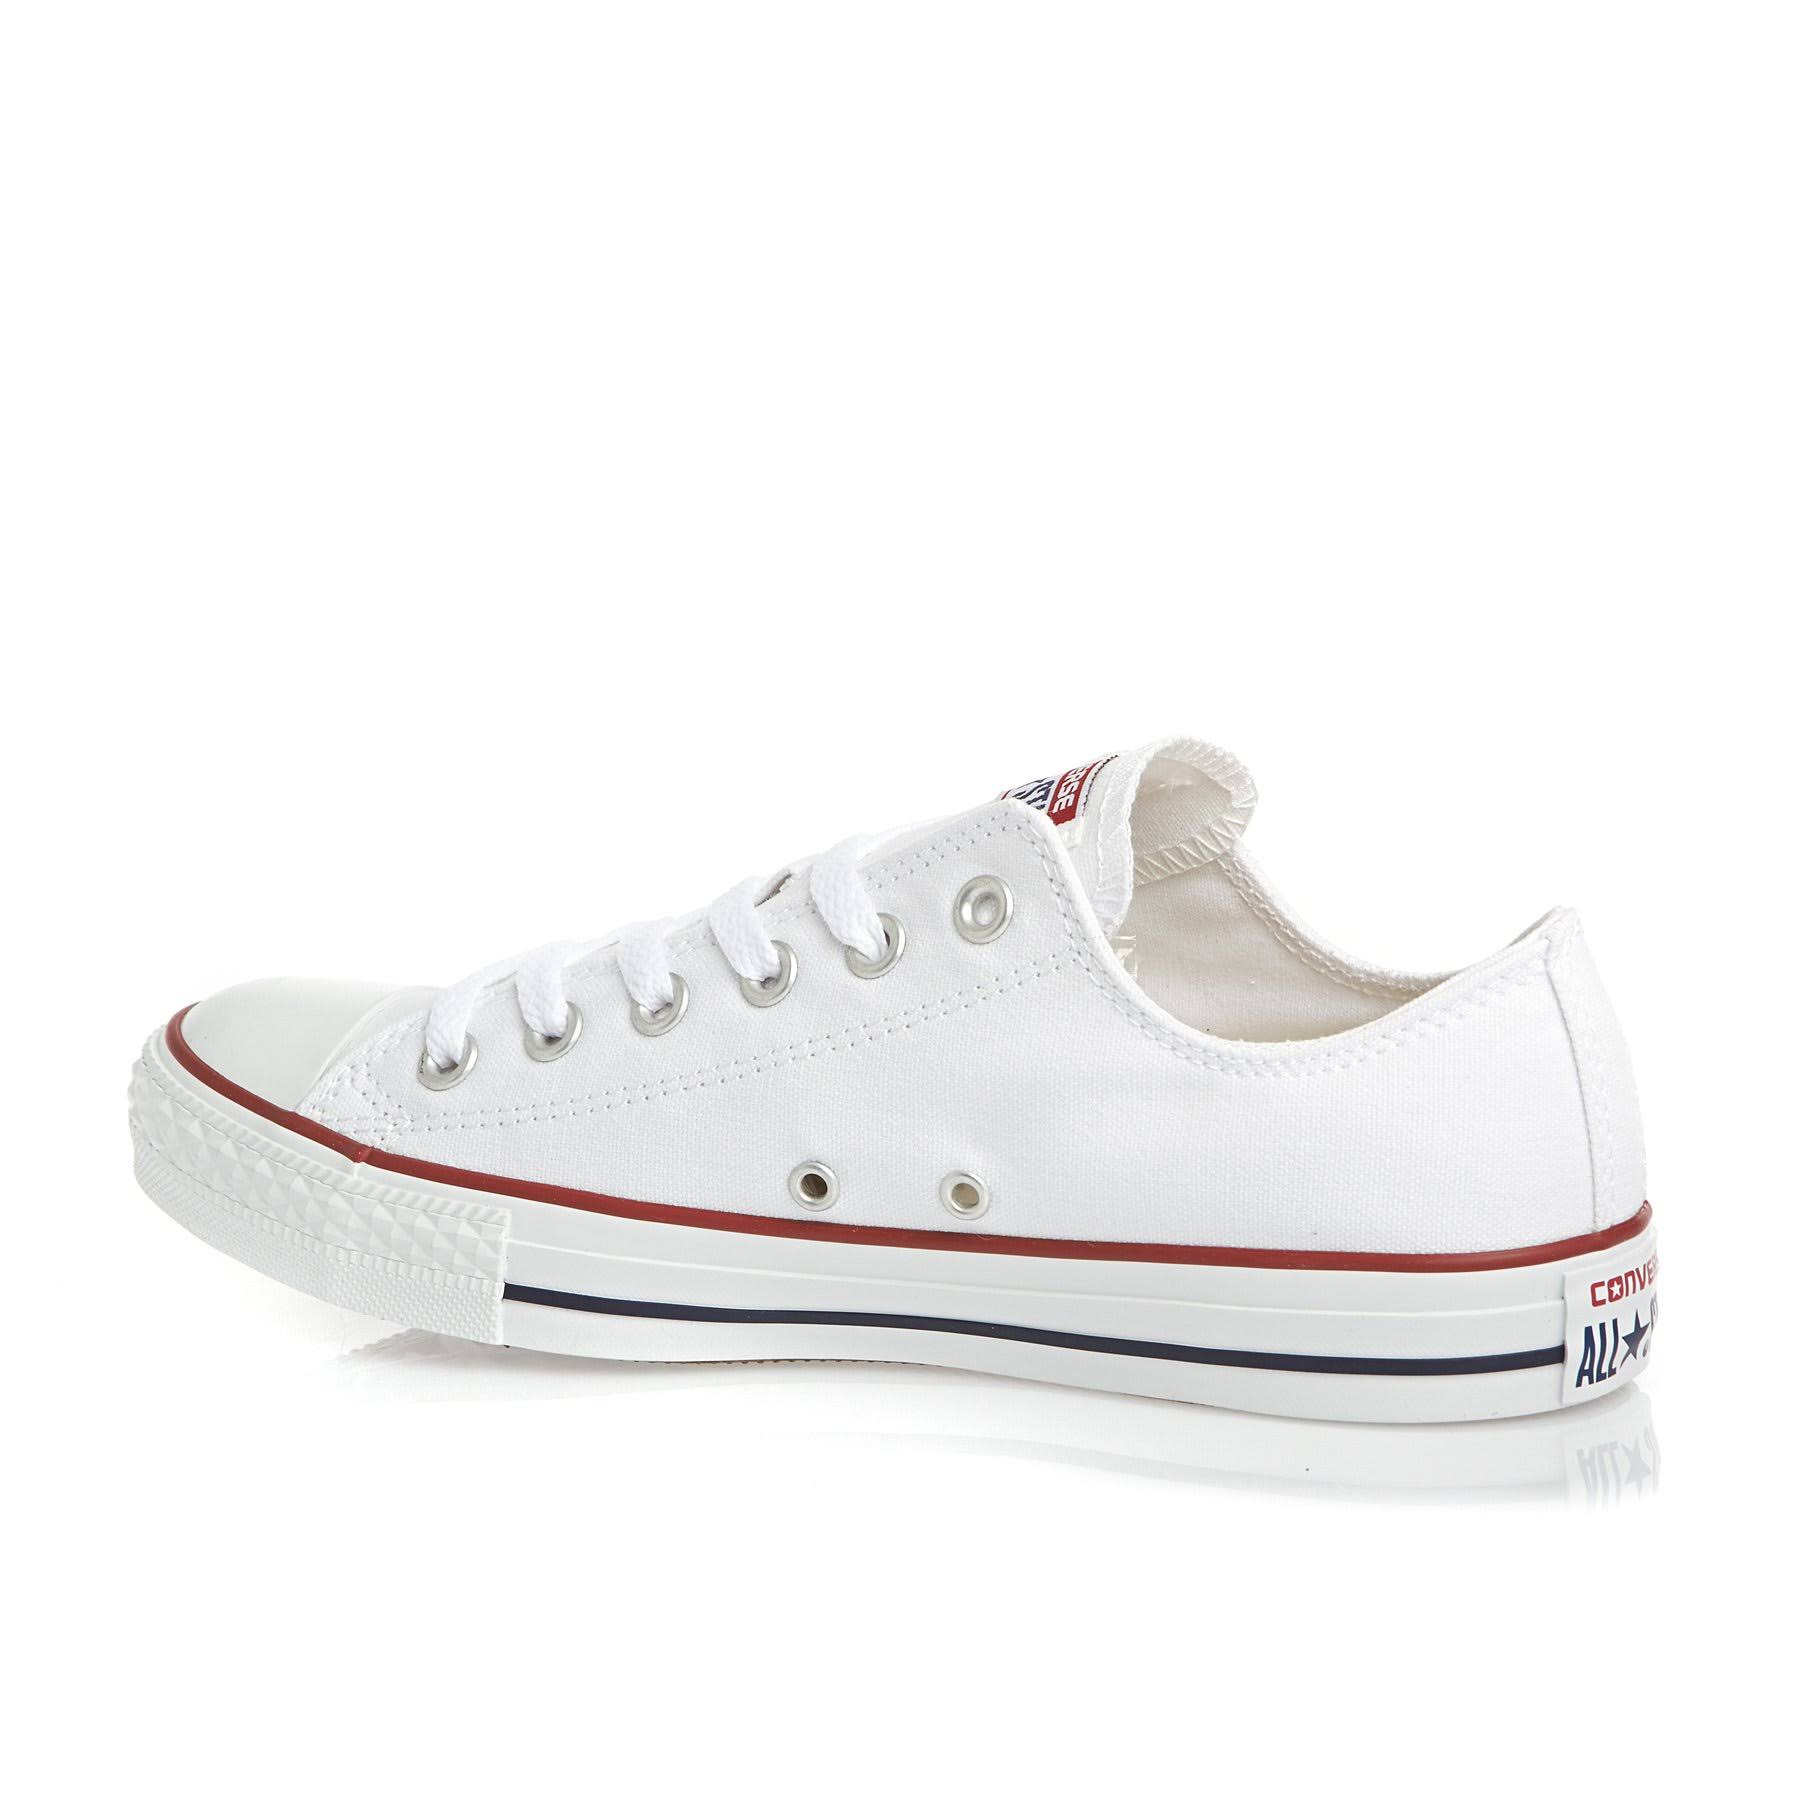 Blanco All Optico M7652 Taylor Chuck Converse Hombre Universal Zapatos Star fEgzx7w8q